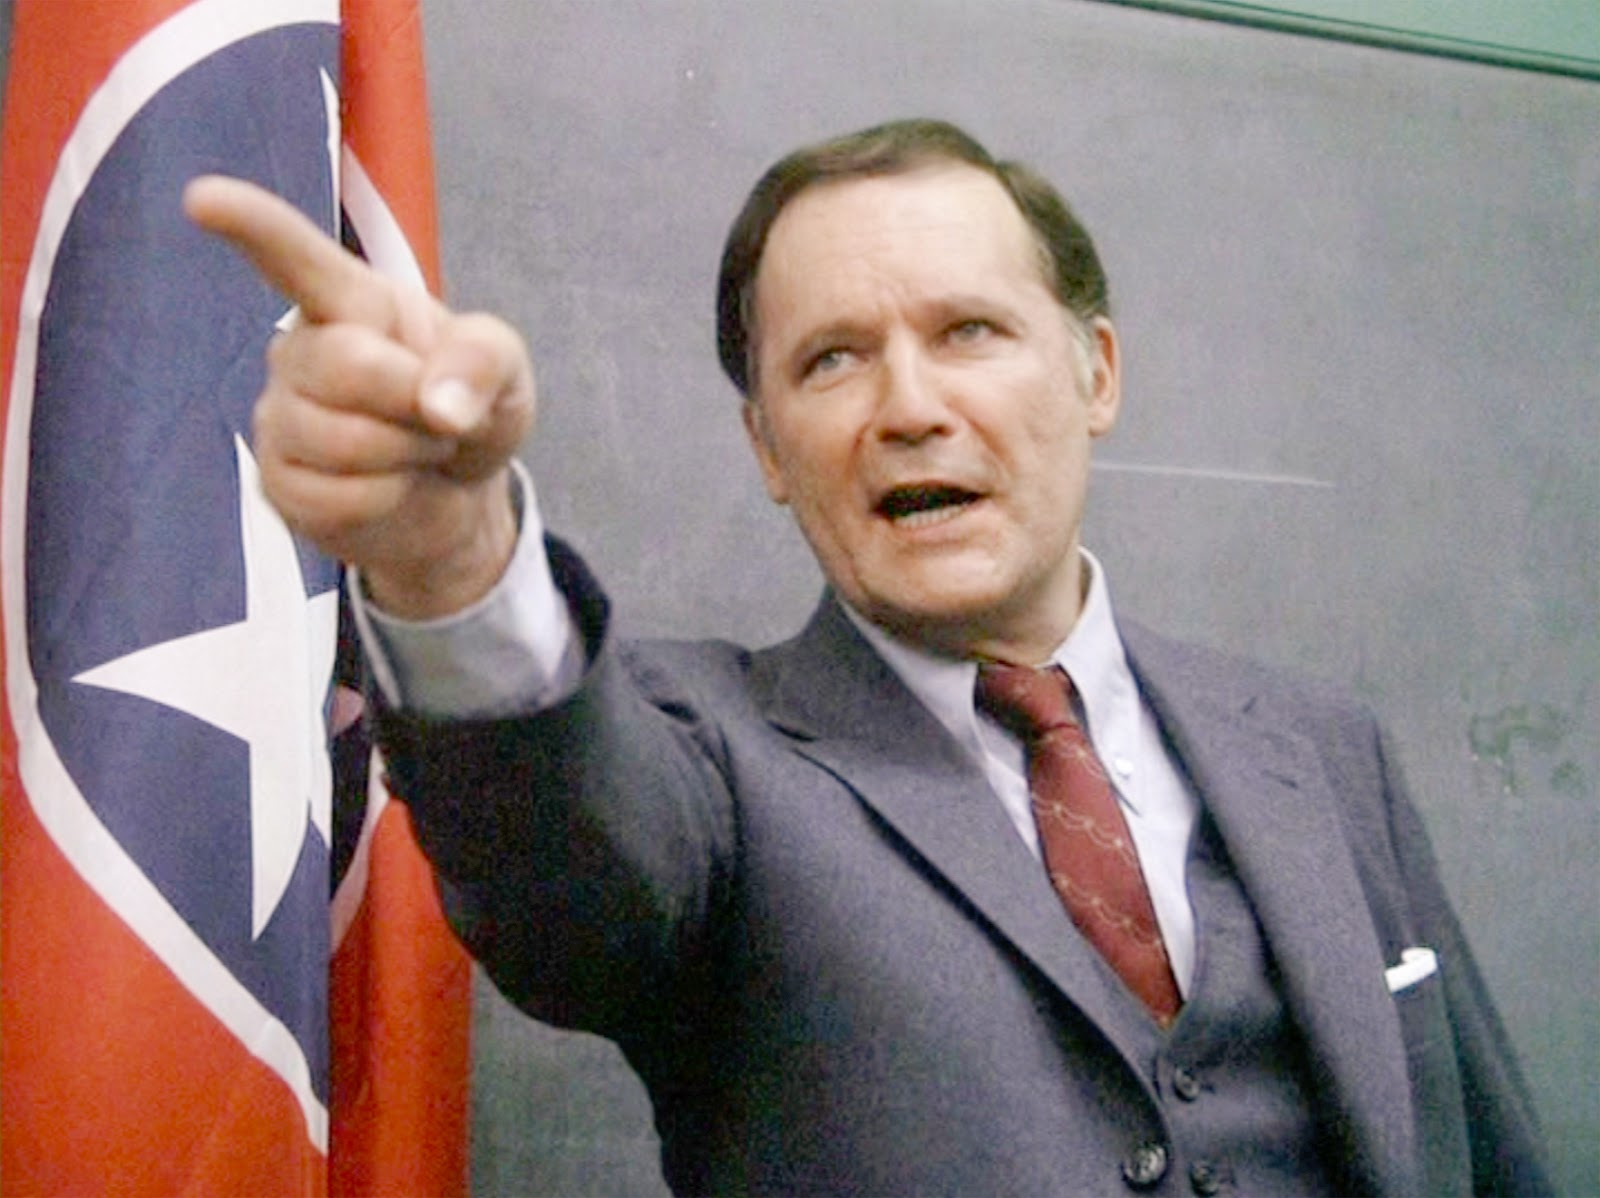 Image of: Court High Quality Dean Wormer From Animal House Blank Meme Template Imgflip Dean Wormer From Animal House Blank Template Imgflip